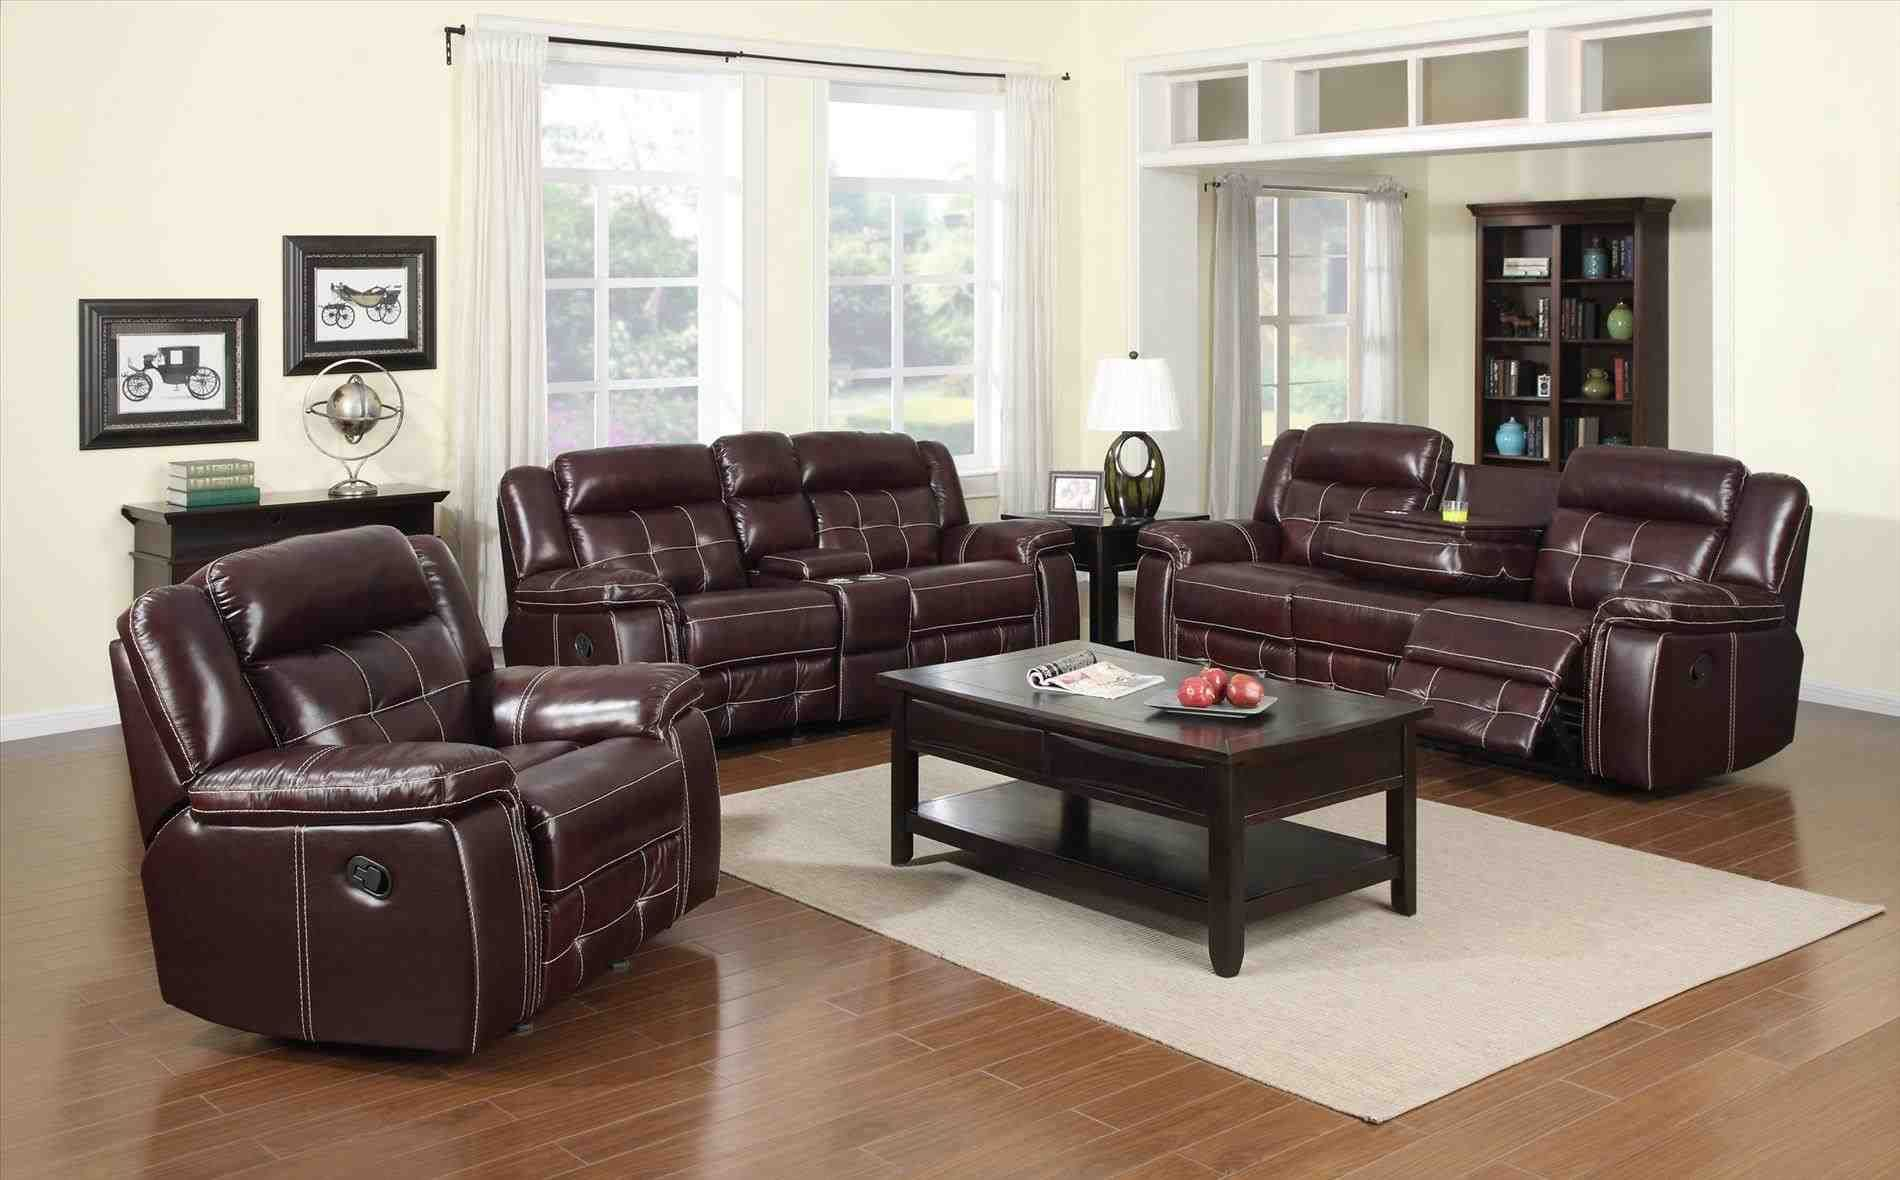 Cheap Leather Sofas In Mississauga - image of: red natuzzi ...